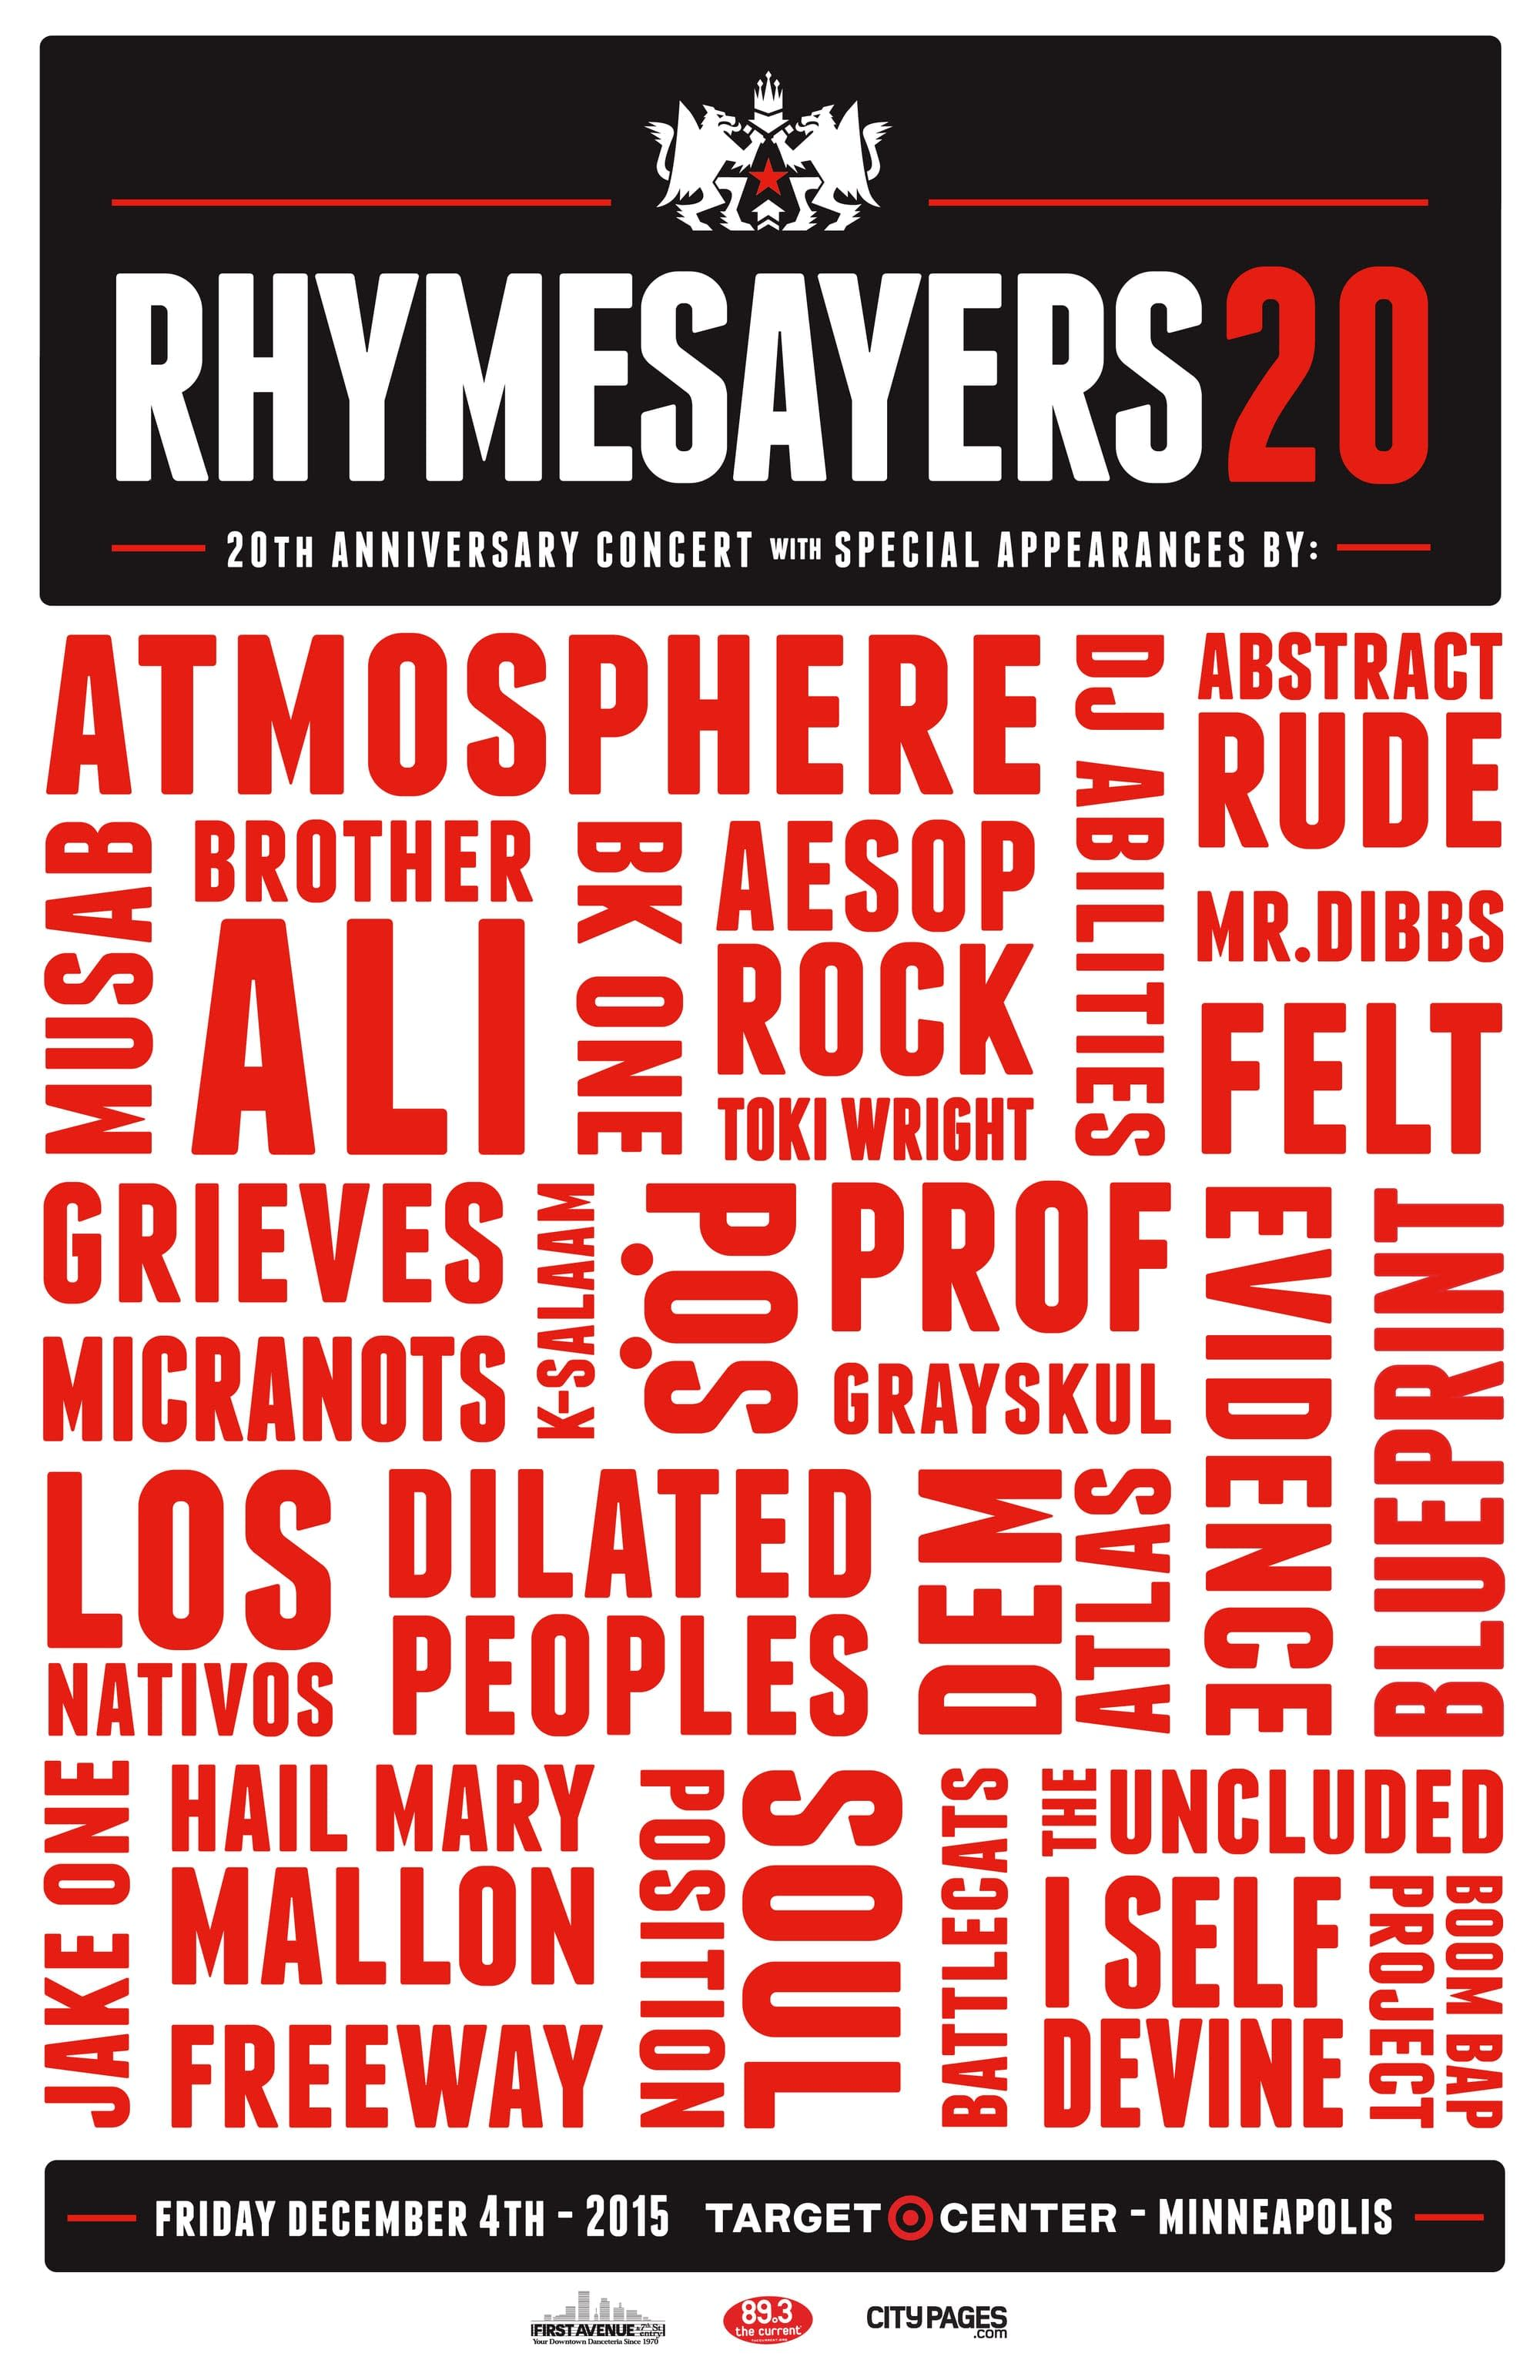 Rhymesayers 20th Anniversary Concert